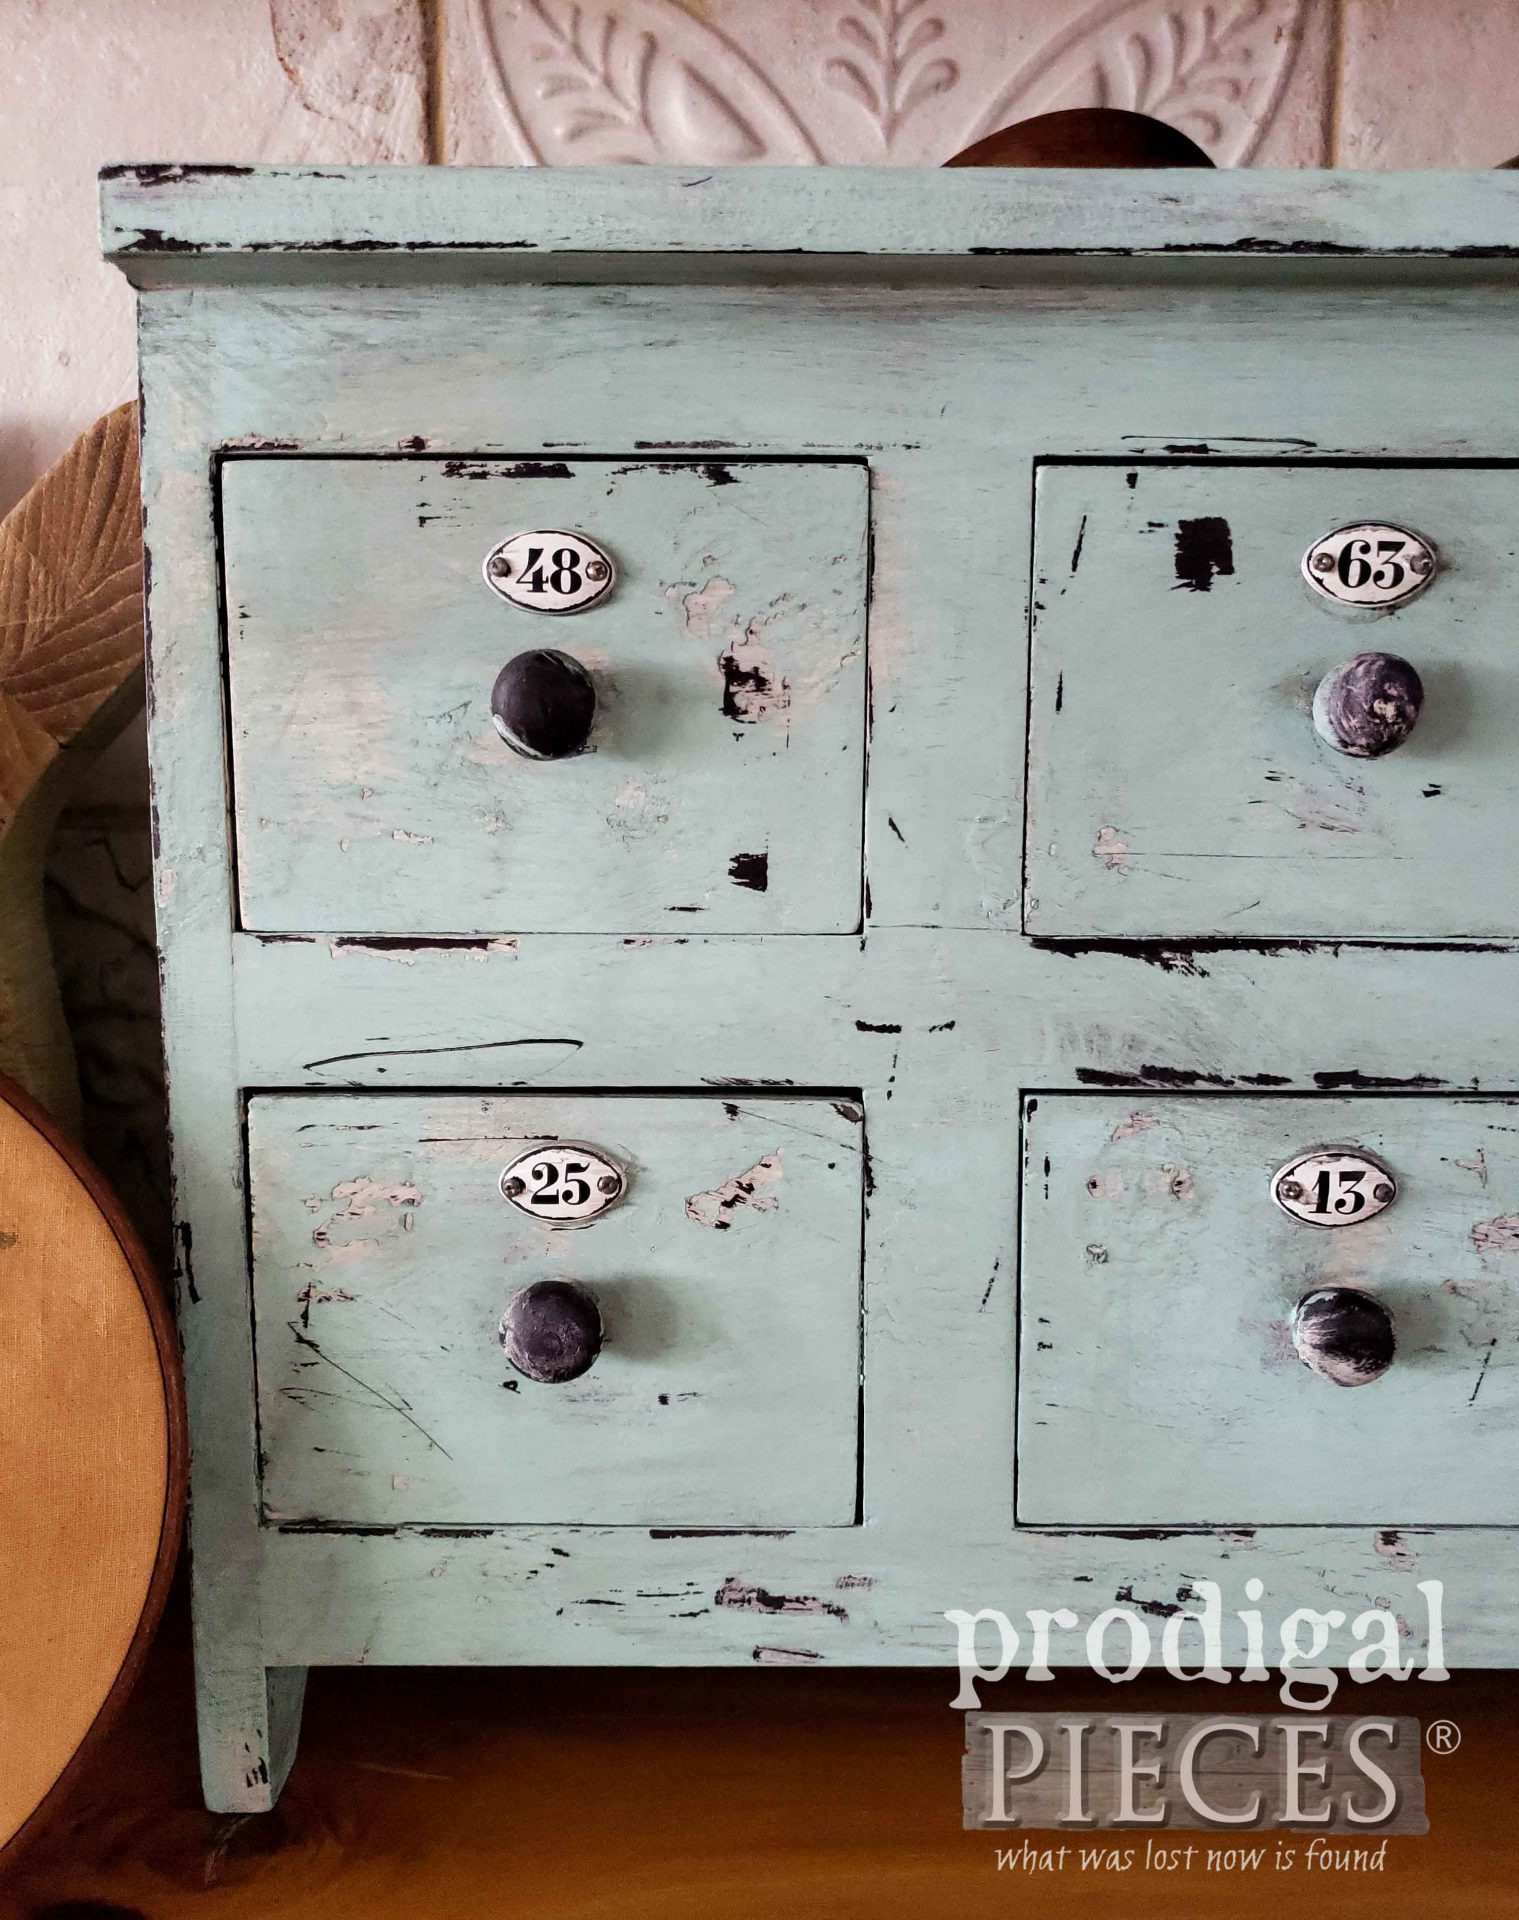 Counter Top Apothecary Cubby for Home Decor by Larissa of Prodigal Pieces | prodigalpieces.com #prodigalpieces #home #homedecor #diy #farmhouse #cottage #industrial #storage